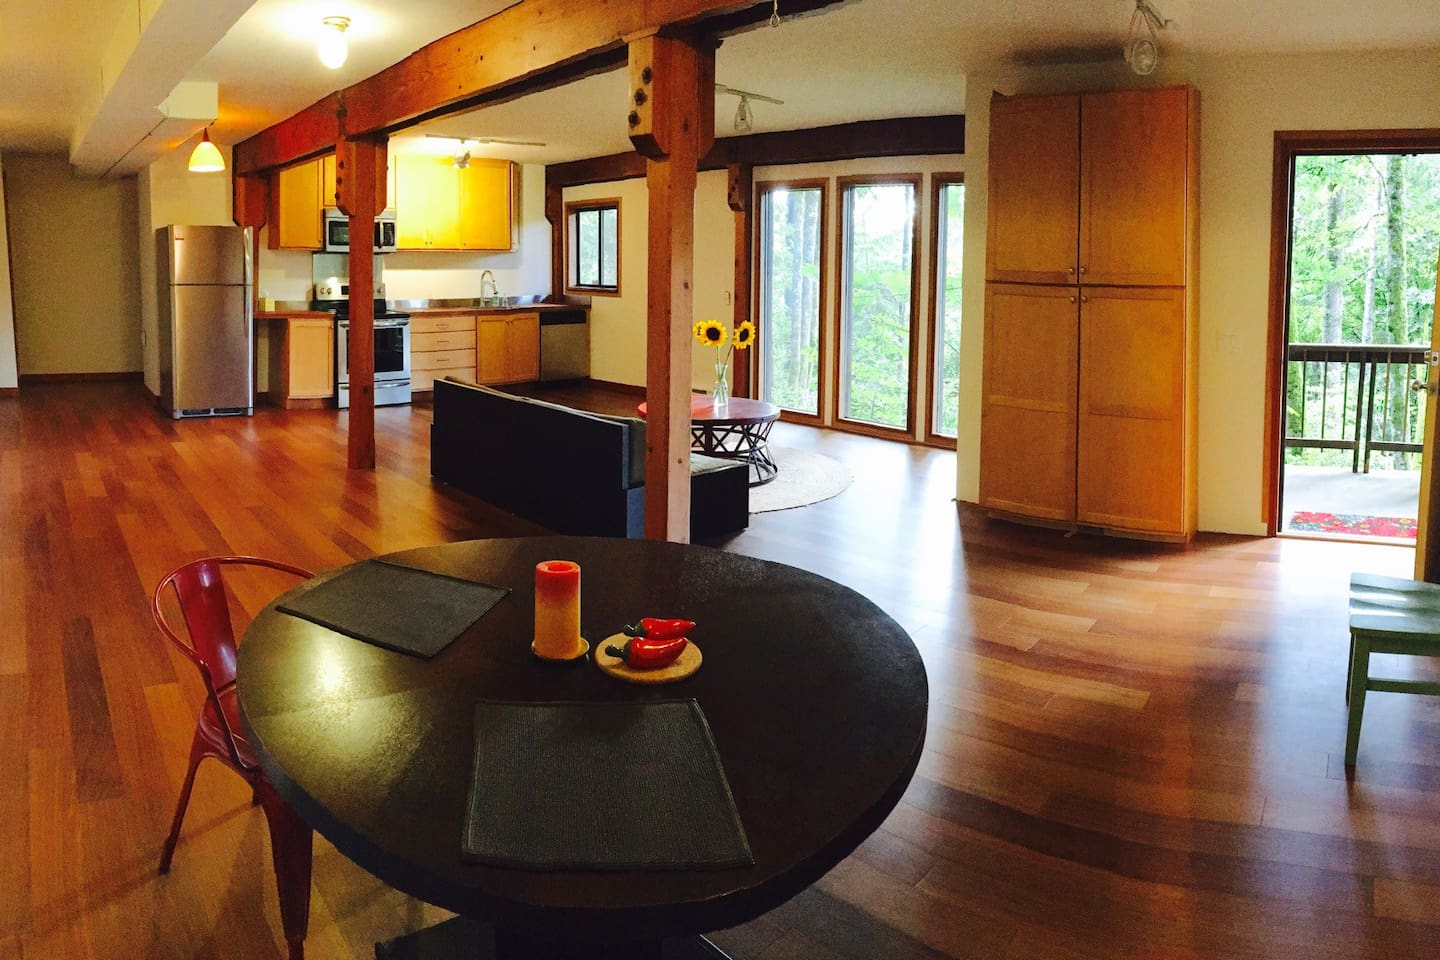 Just enough panorama to show the whole room and the outside trees. This space is canteleivered out above ground. It's about 30' long x 20' wide, plus the bedroom and bath are behind the kitchen, and those are nice sizes, too.